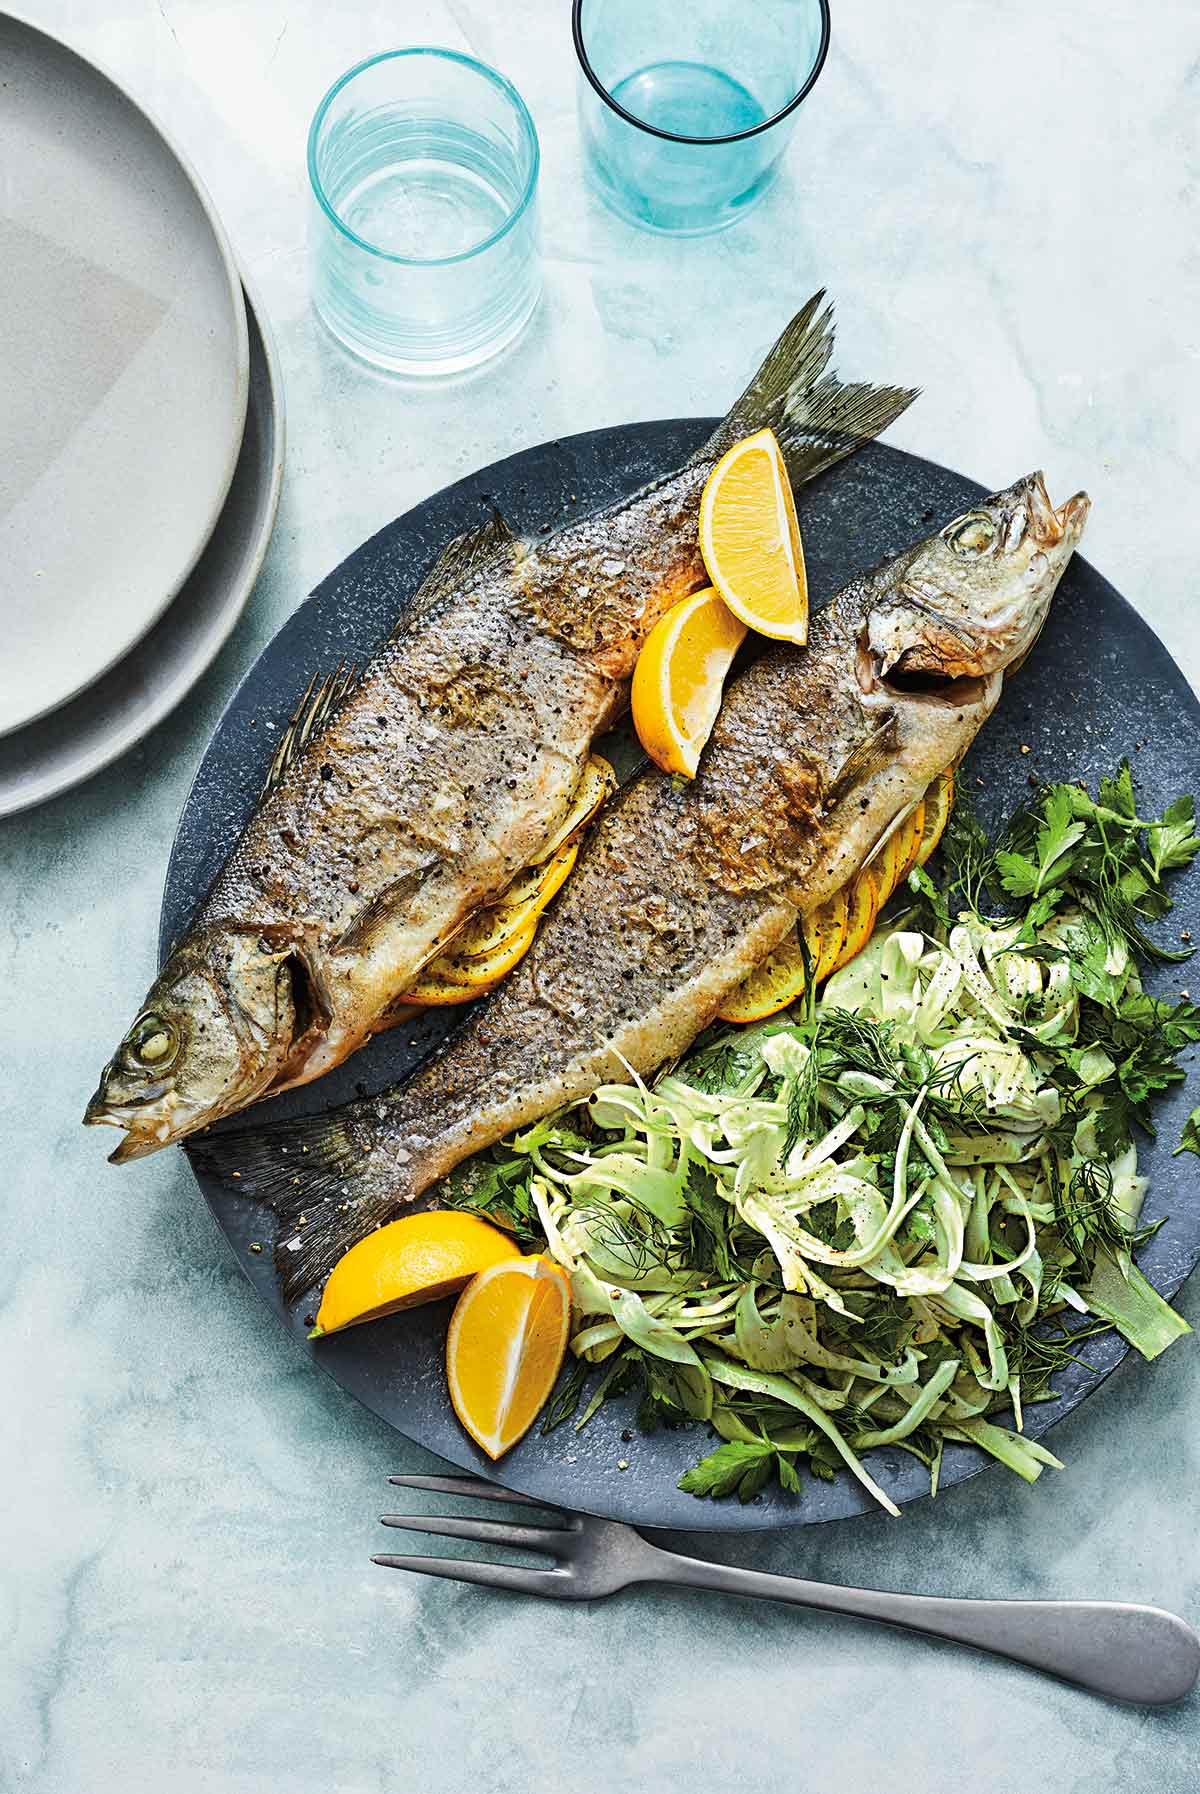 Two whole roasted branzino with lemon and shaved fennel salad on a blue plate with a fork, two glasses, and two grey plates beside it.